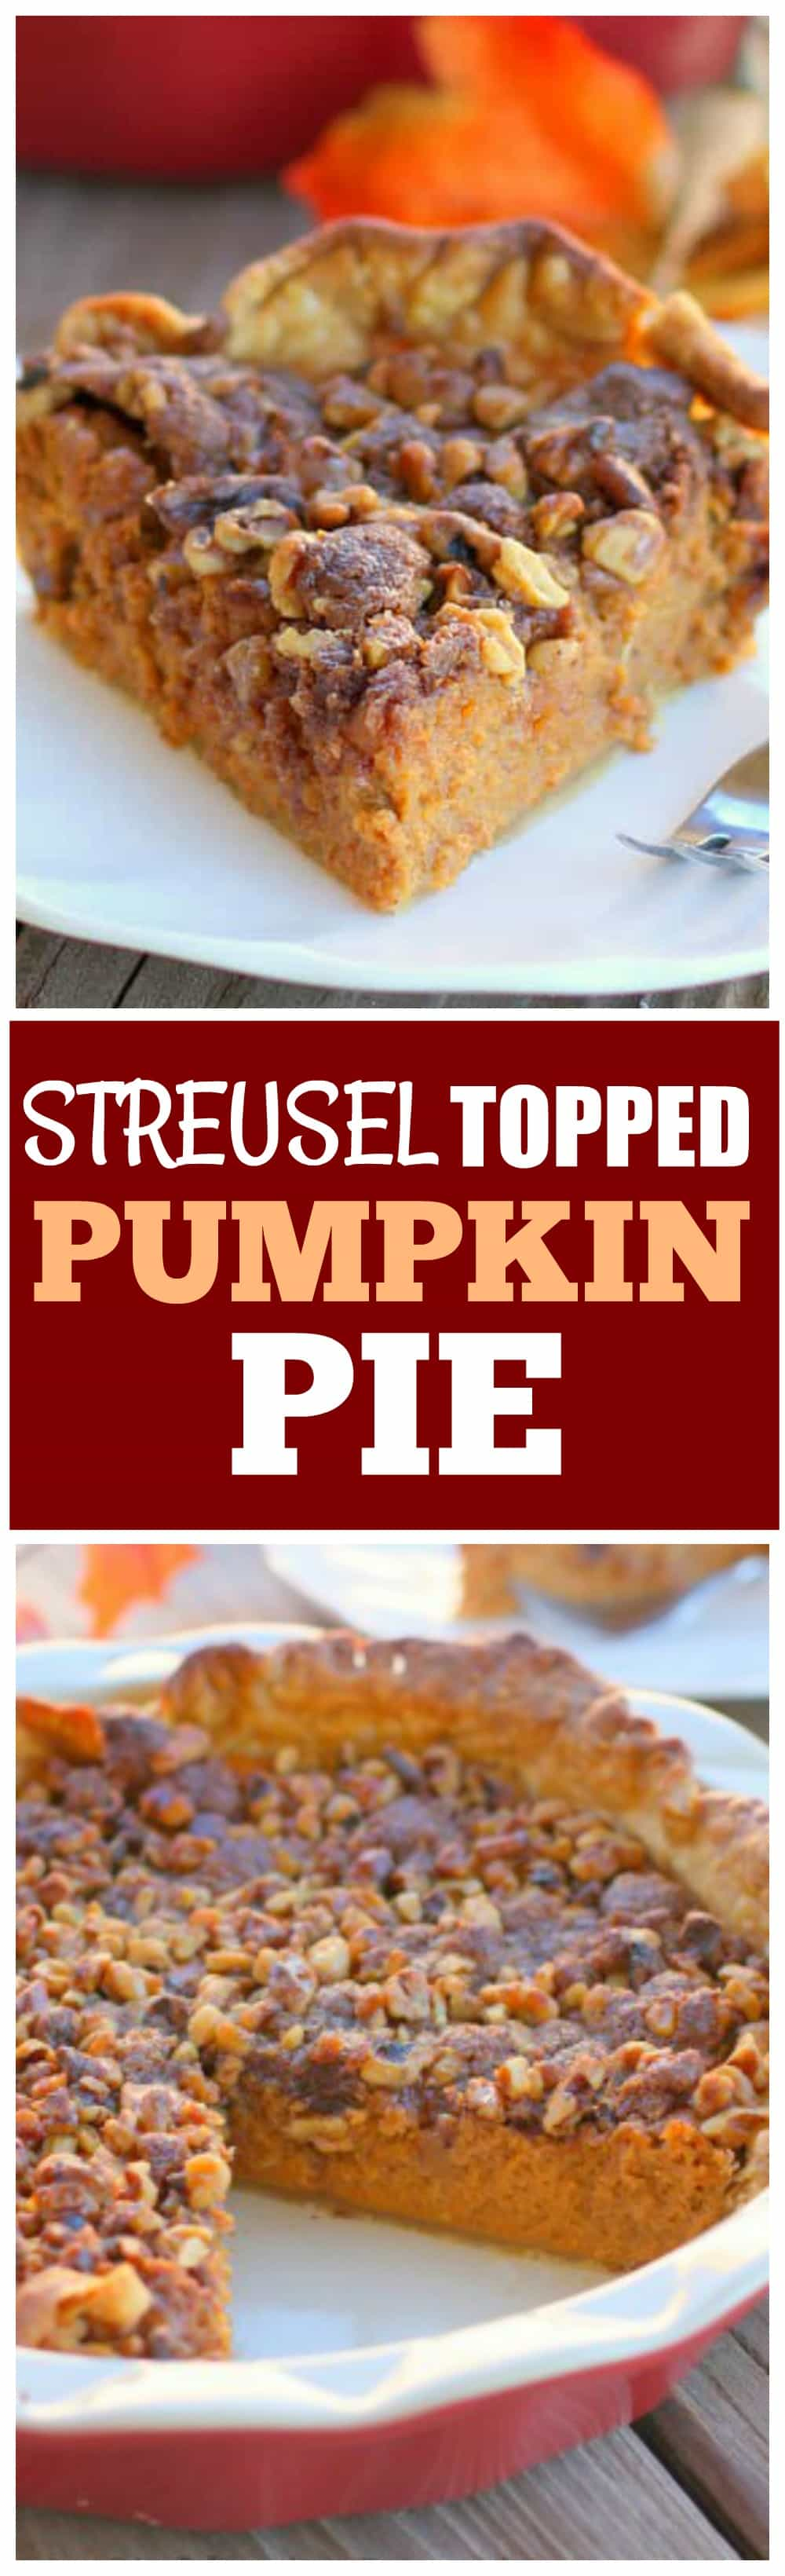 This Streusel Topped Pumpkin Pie is a your classic pumpkin pie with a streusel topping to make it a little fancier. the-girl-who-ate-everything.com